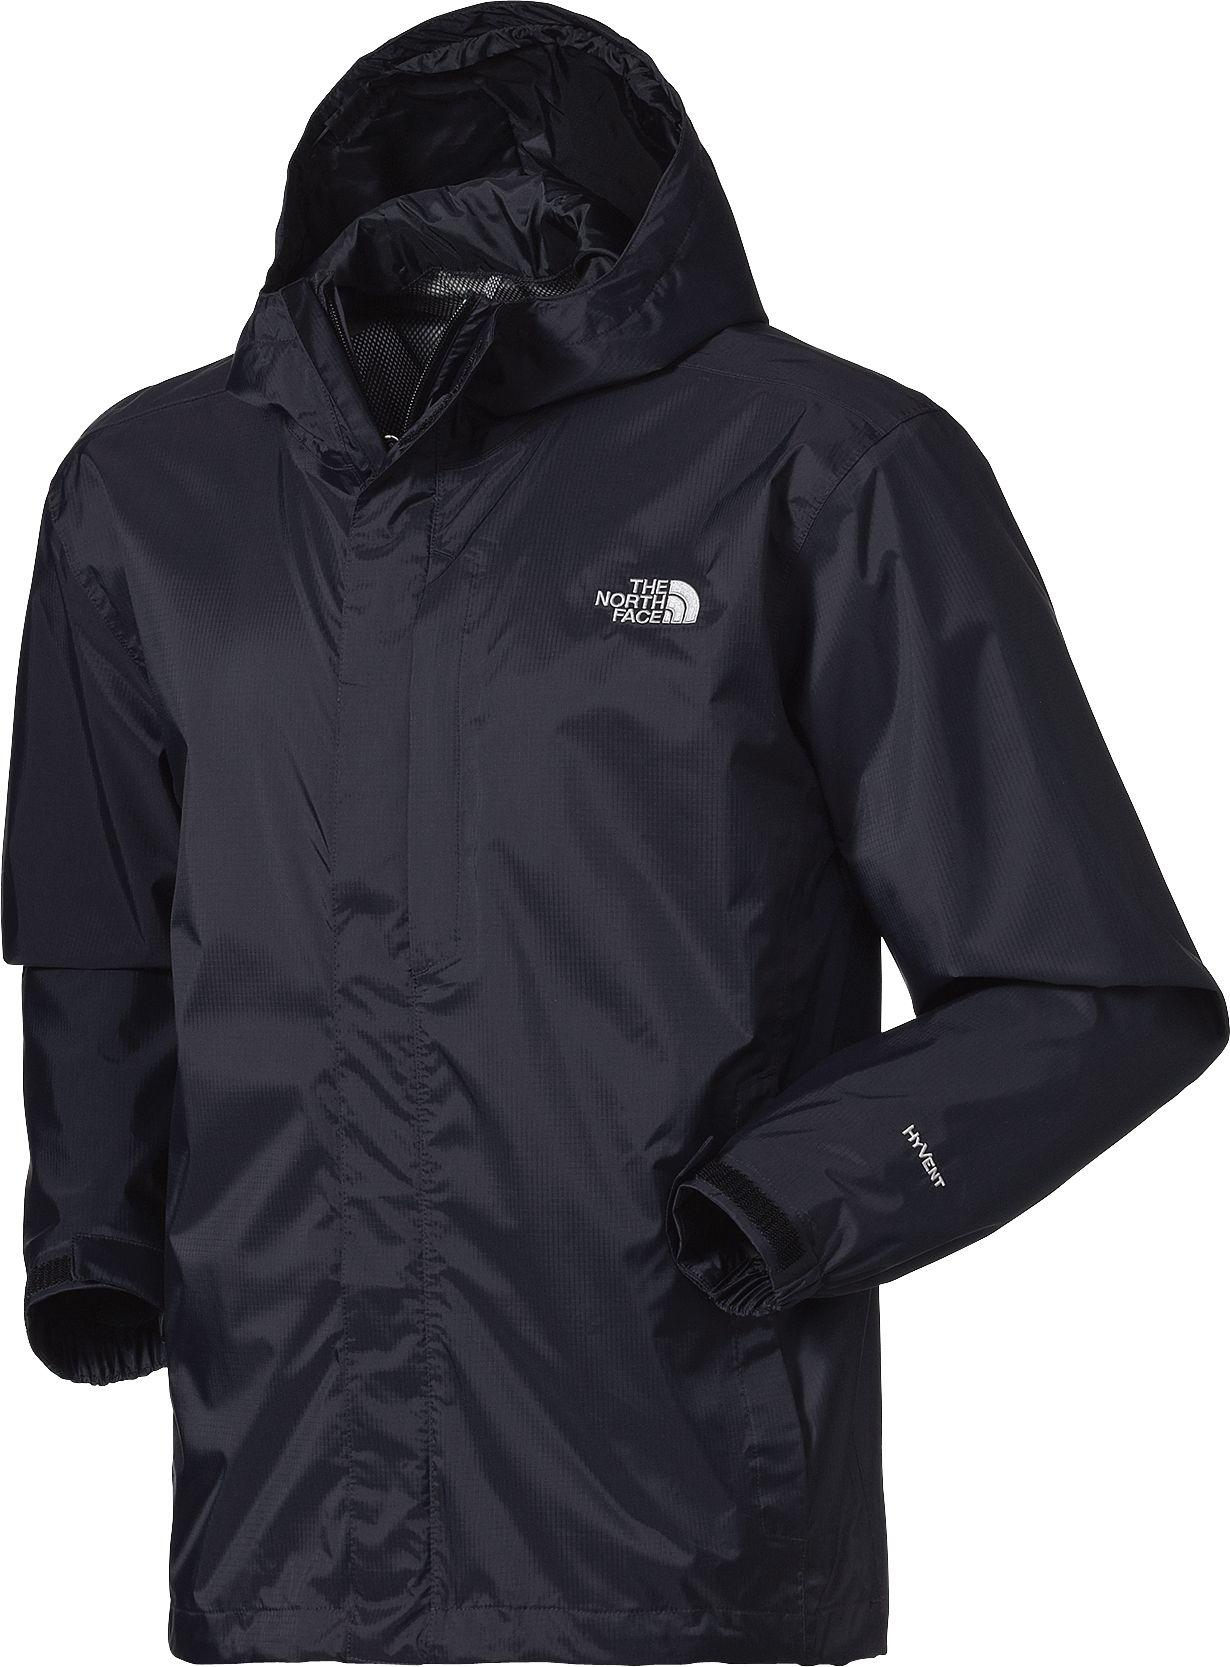 33909181f9 Lyst - The North Face Stinson Rain Jacket in Black for Men